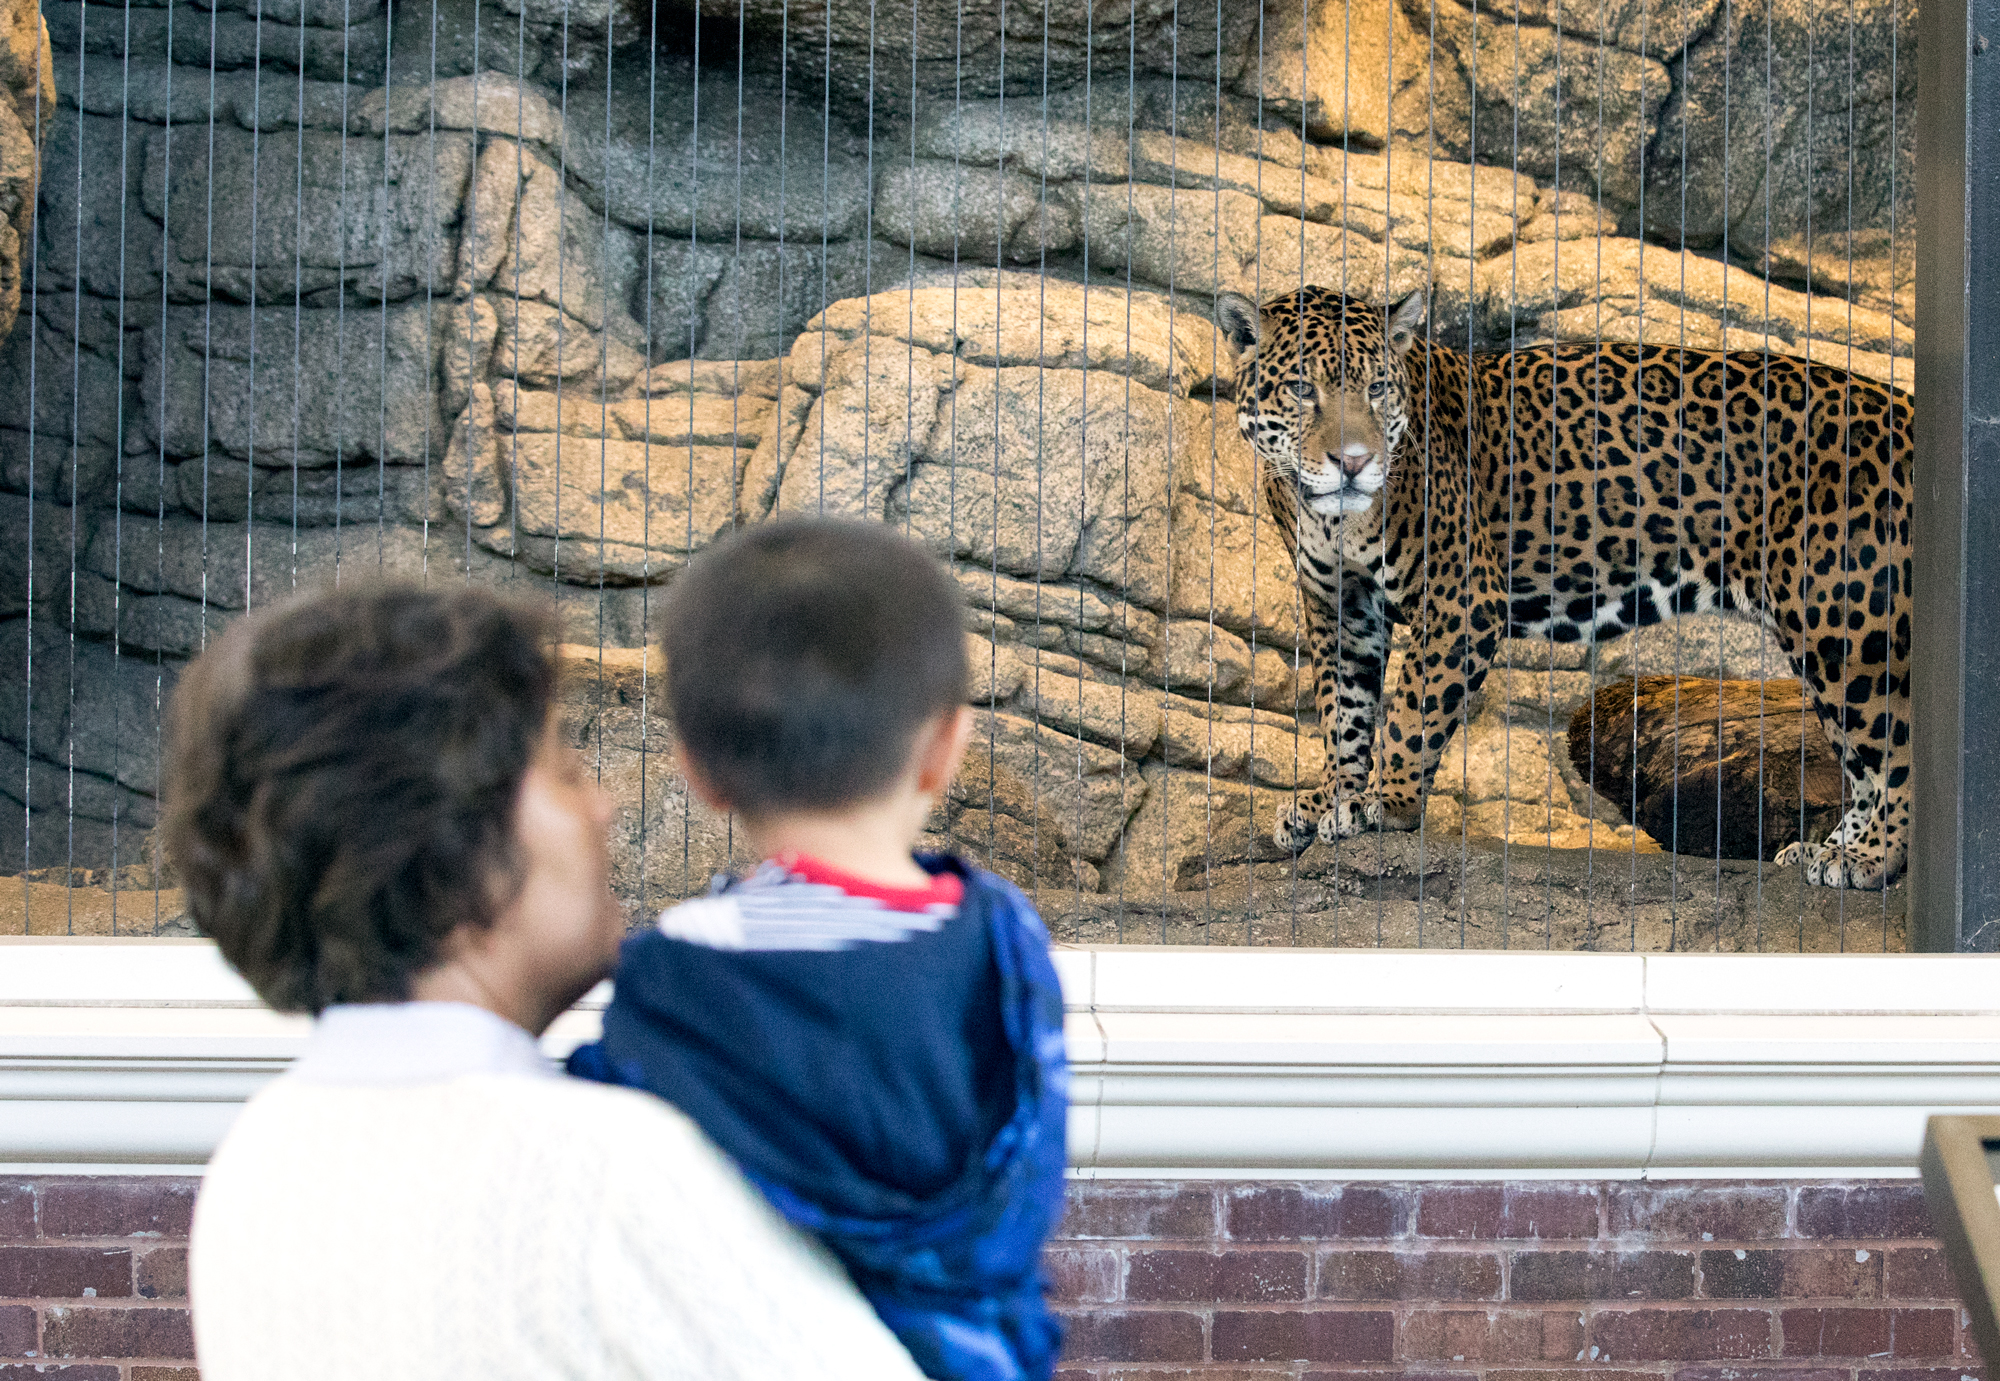 A family takes a look at a jaguar at the Lincoln Park Zoo on June 9, 2017. (Andrew Gill/WBEZ)